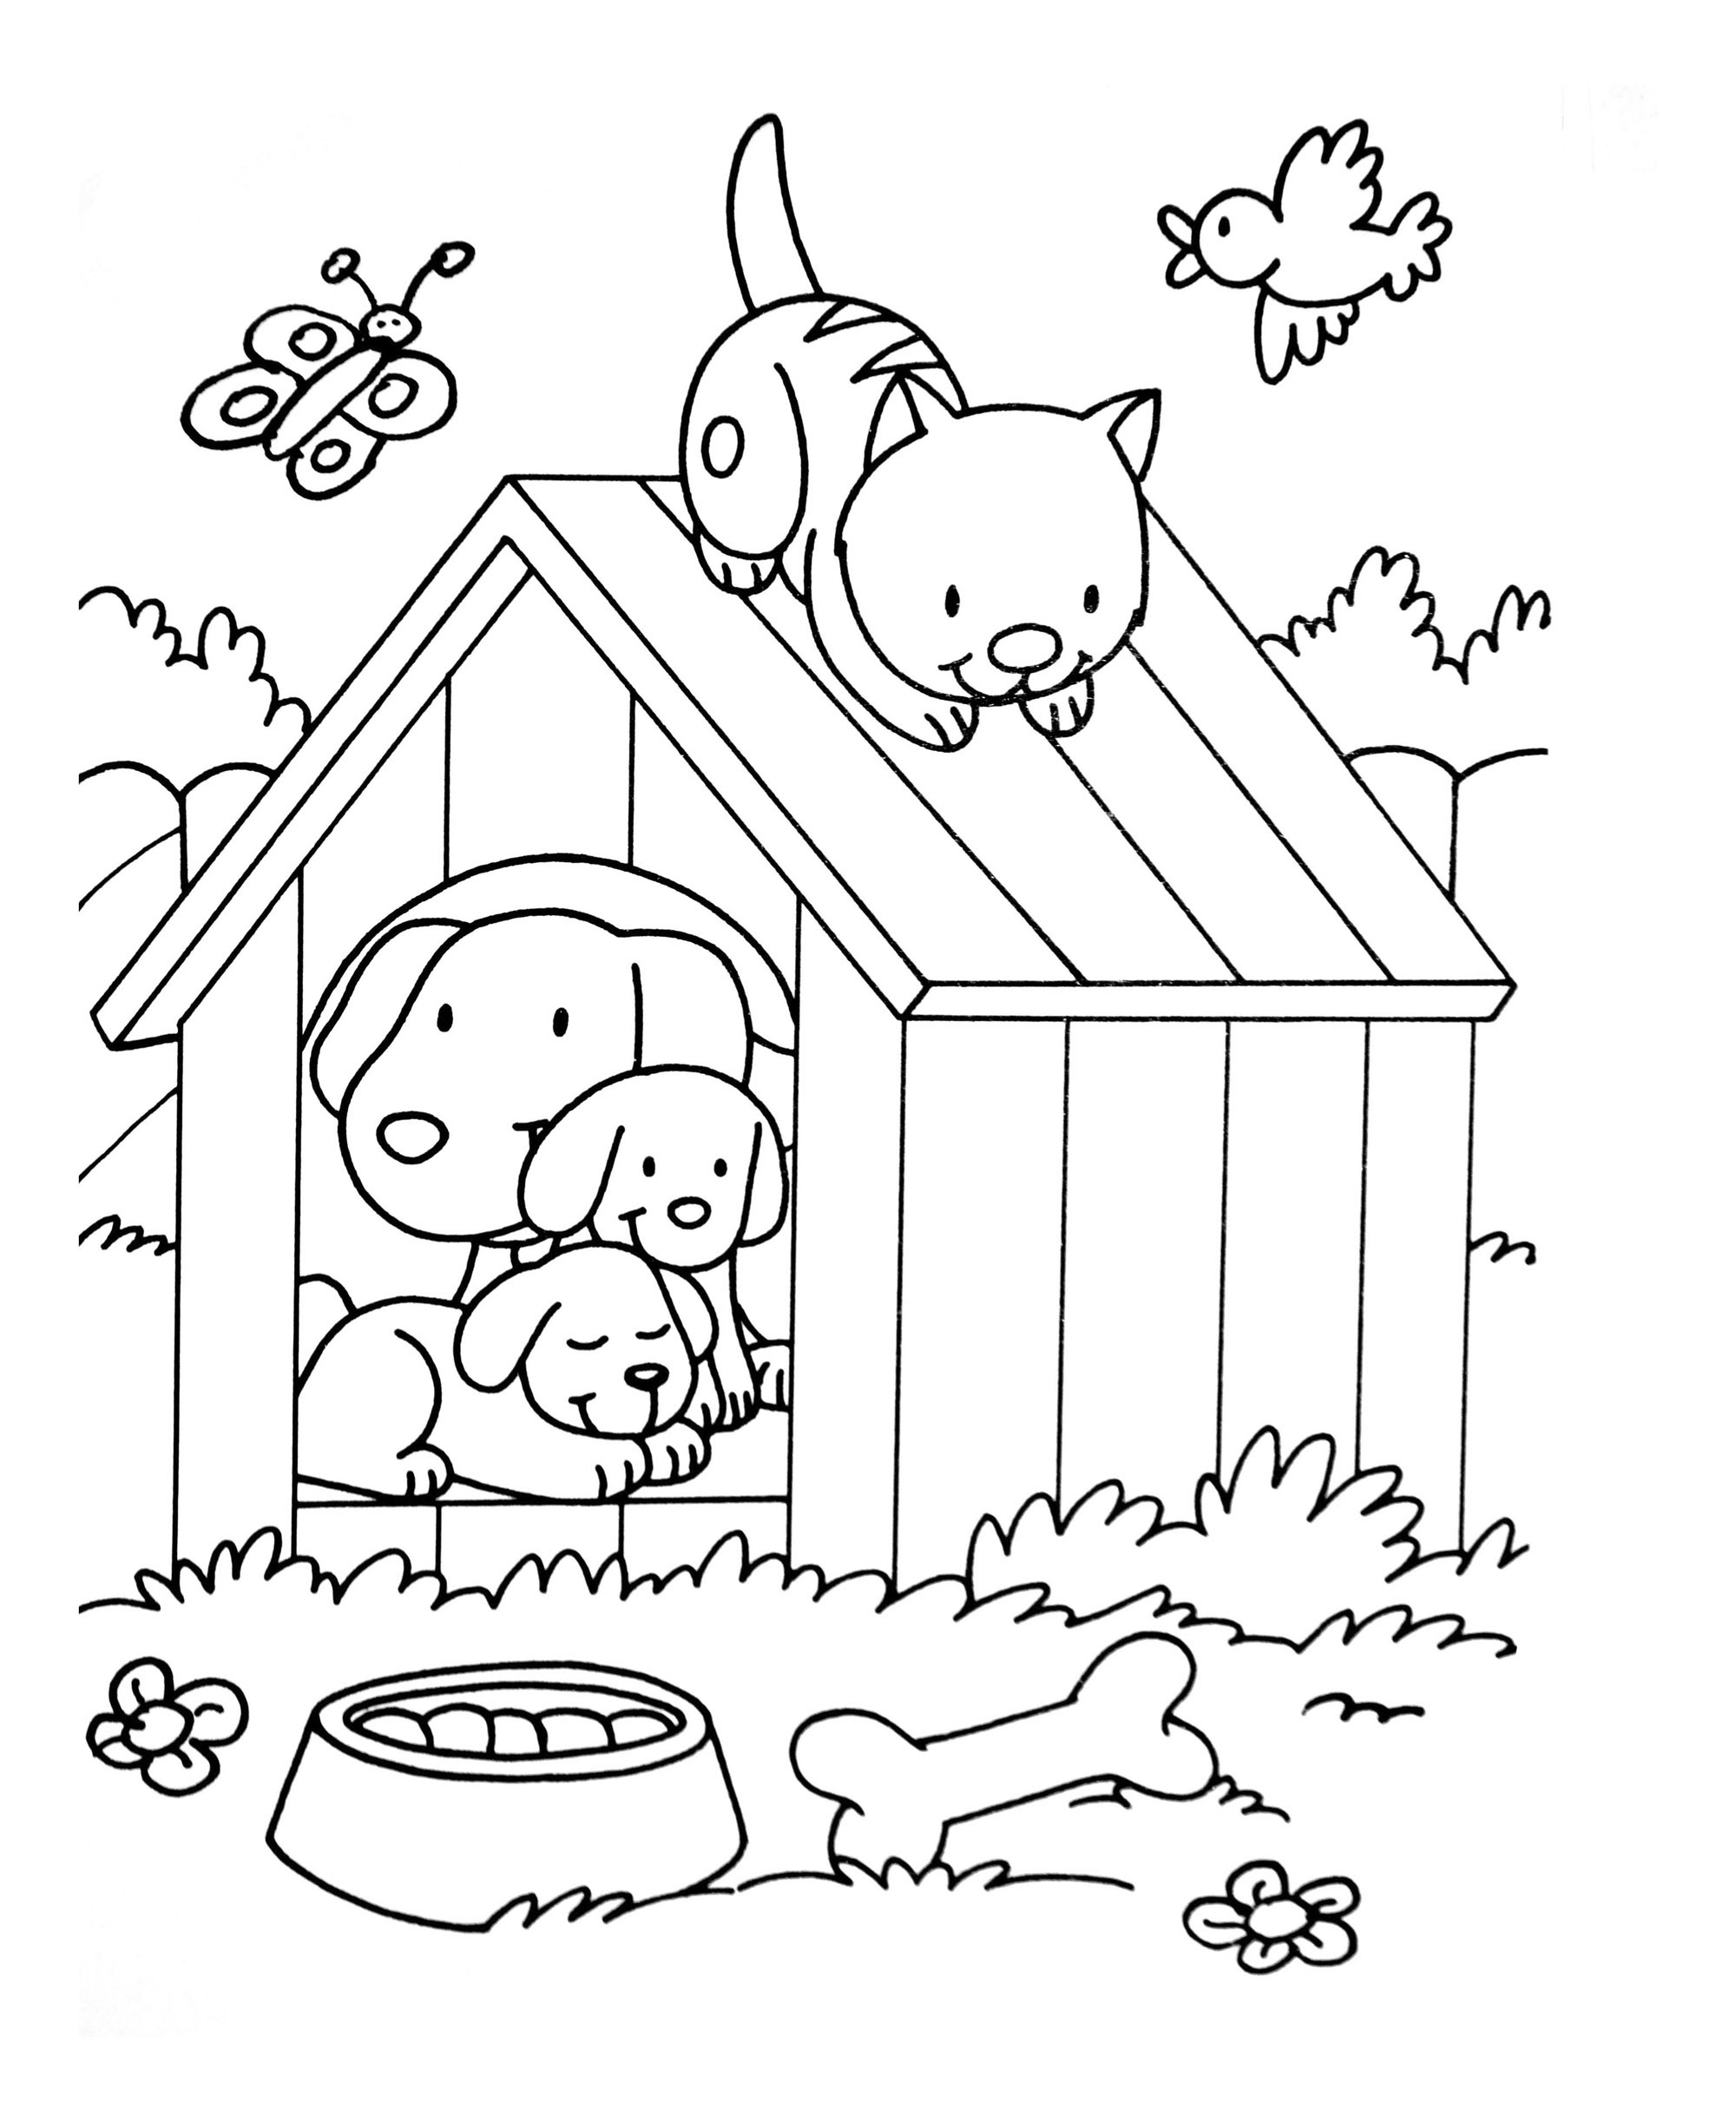 free coloring pages dogs and cats - dog cat birdjpg animal coloring pages for kids to print